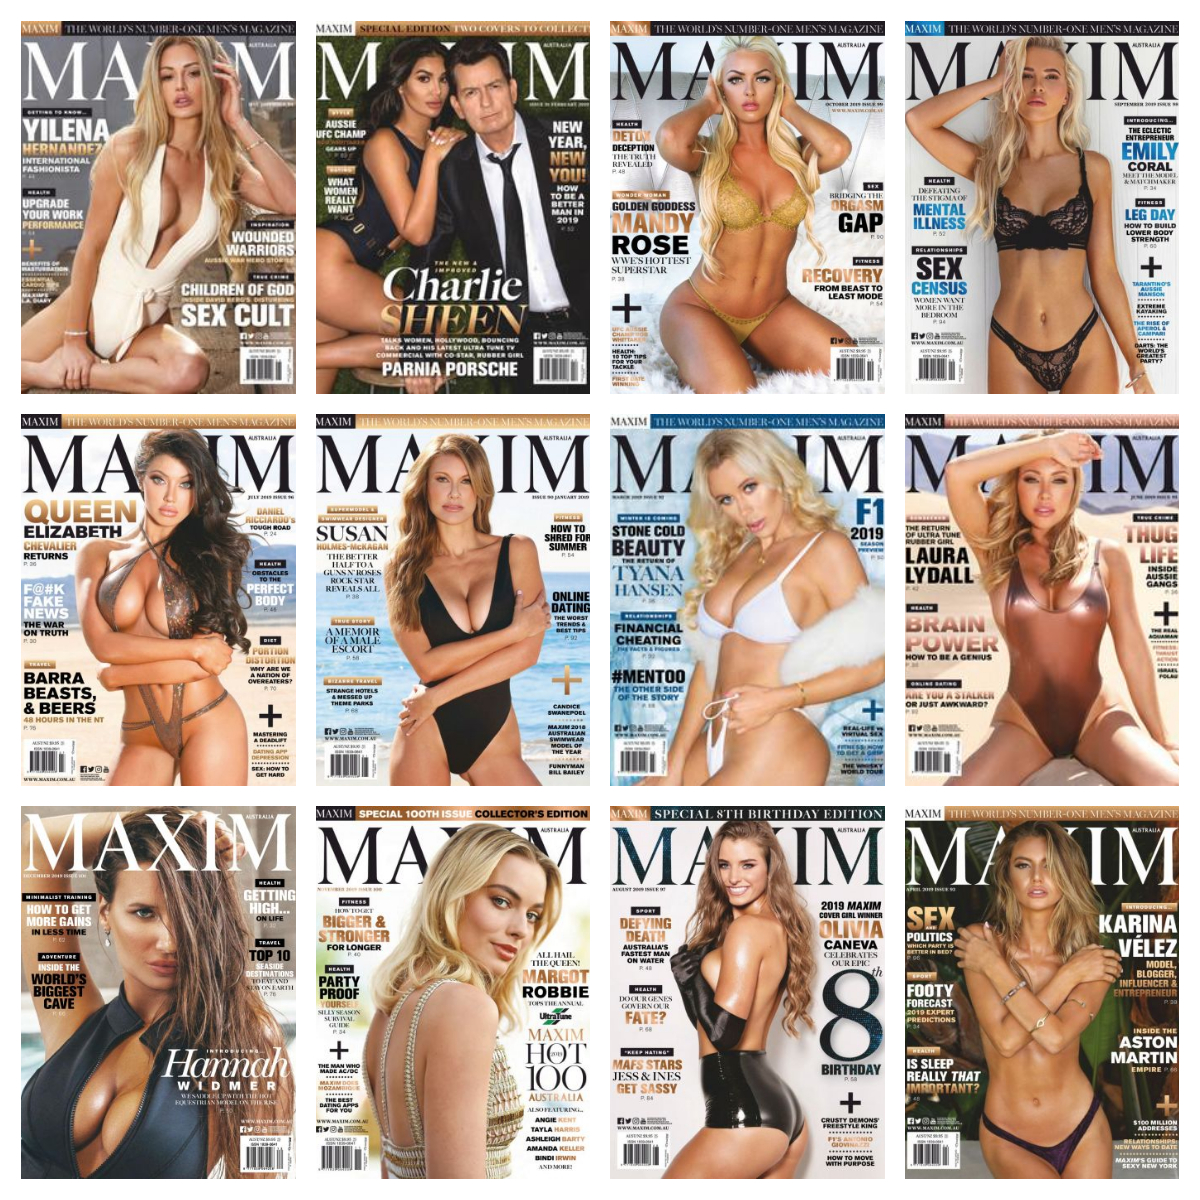 Maxim Australia – 2019 Full Year Issues Collection